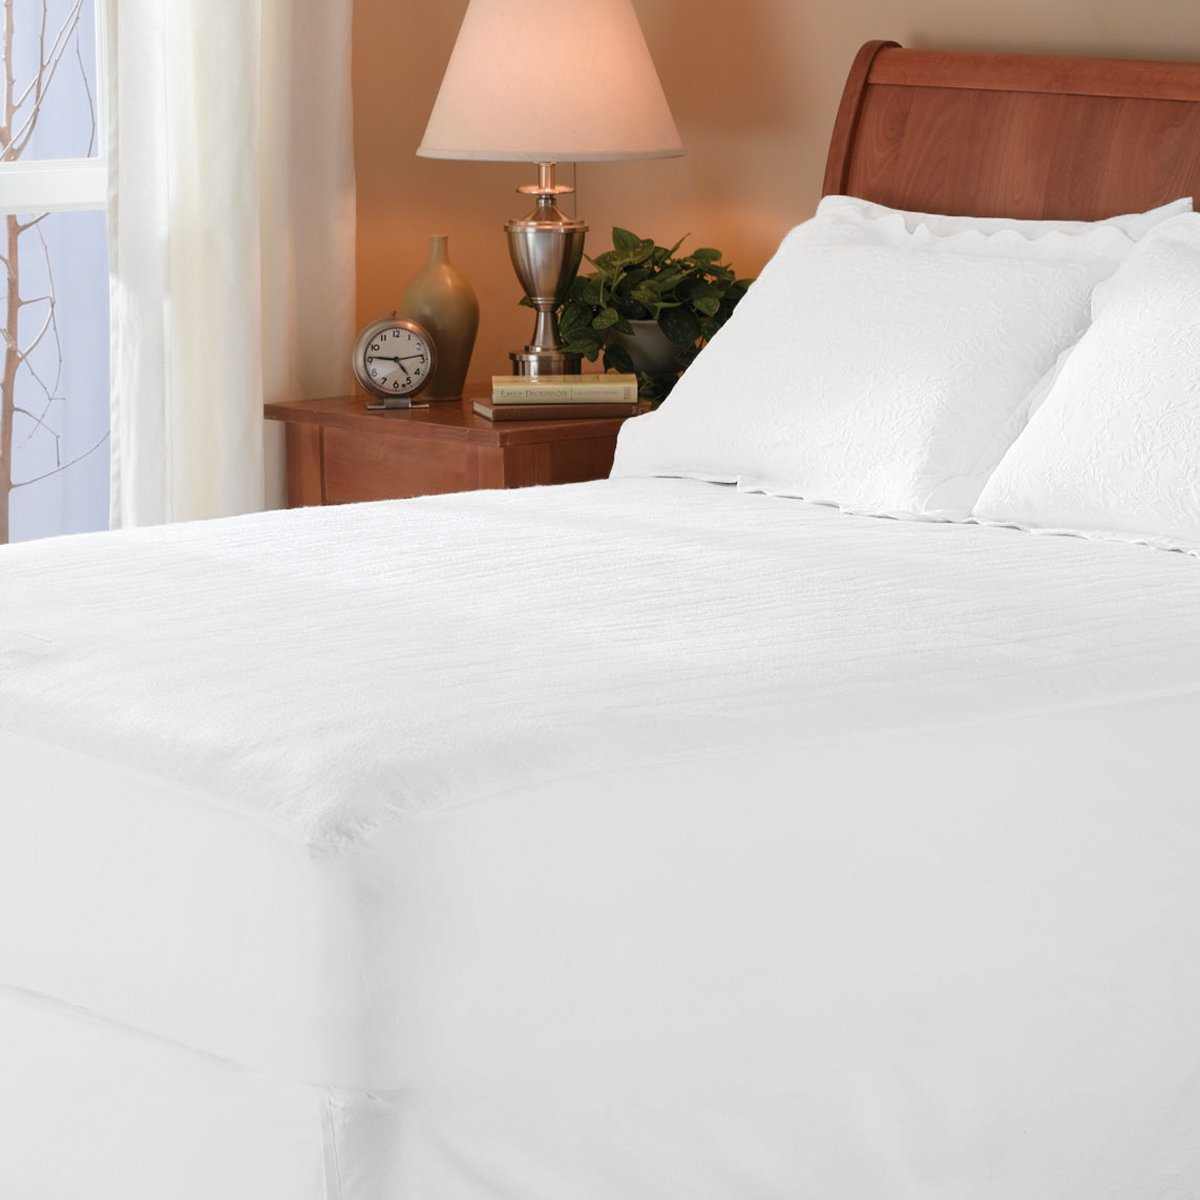 Sunbeam Heated Mattress Pad Queen MSU1GQS N000 12A50